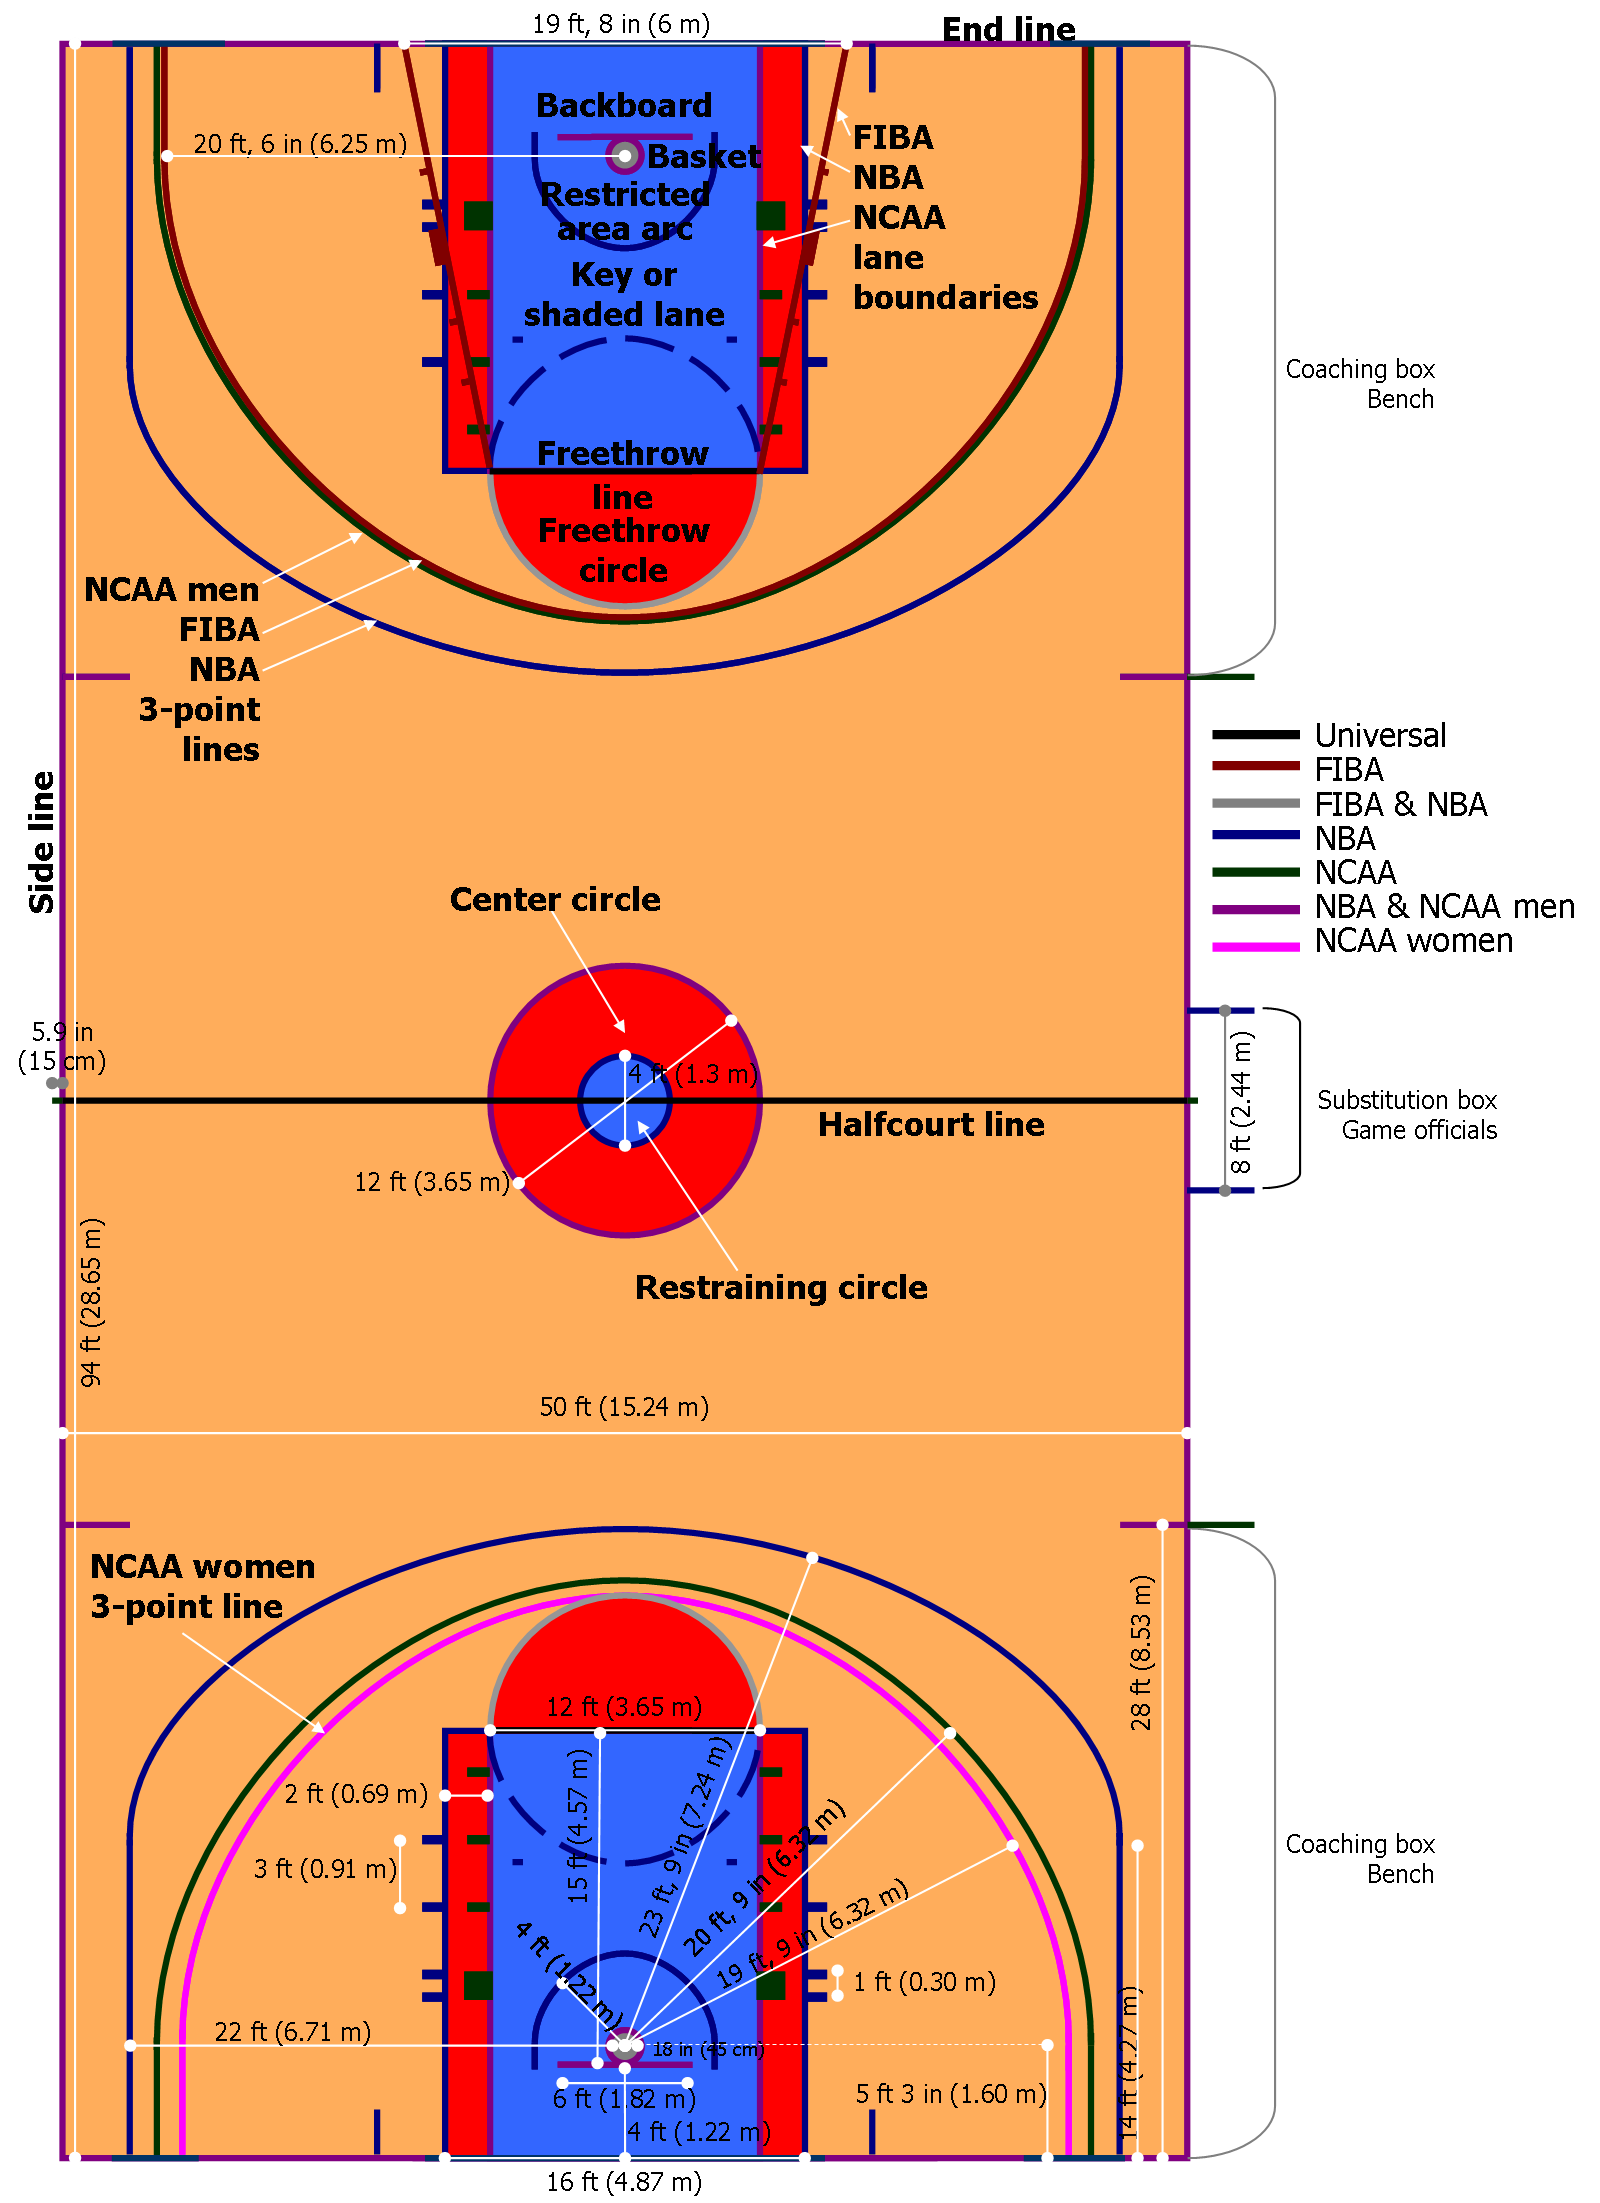 Basketball court dimensions postema performance for What are the dimensions of a basketball court